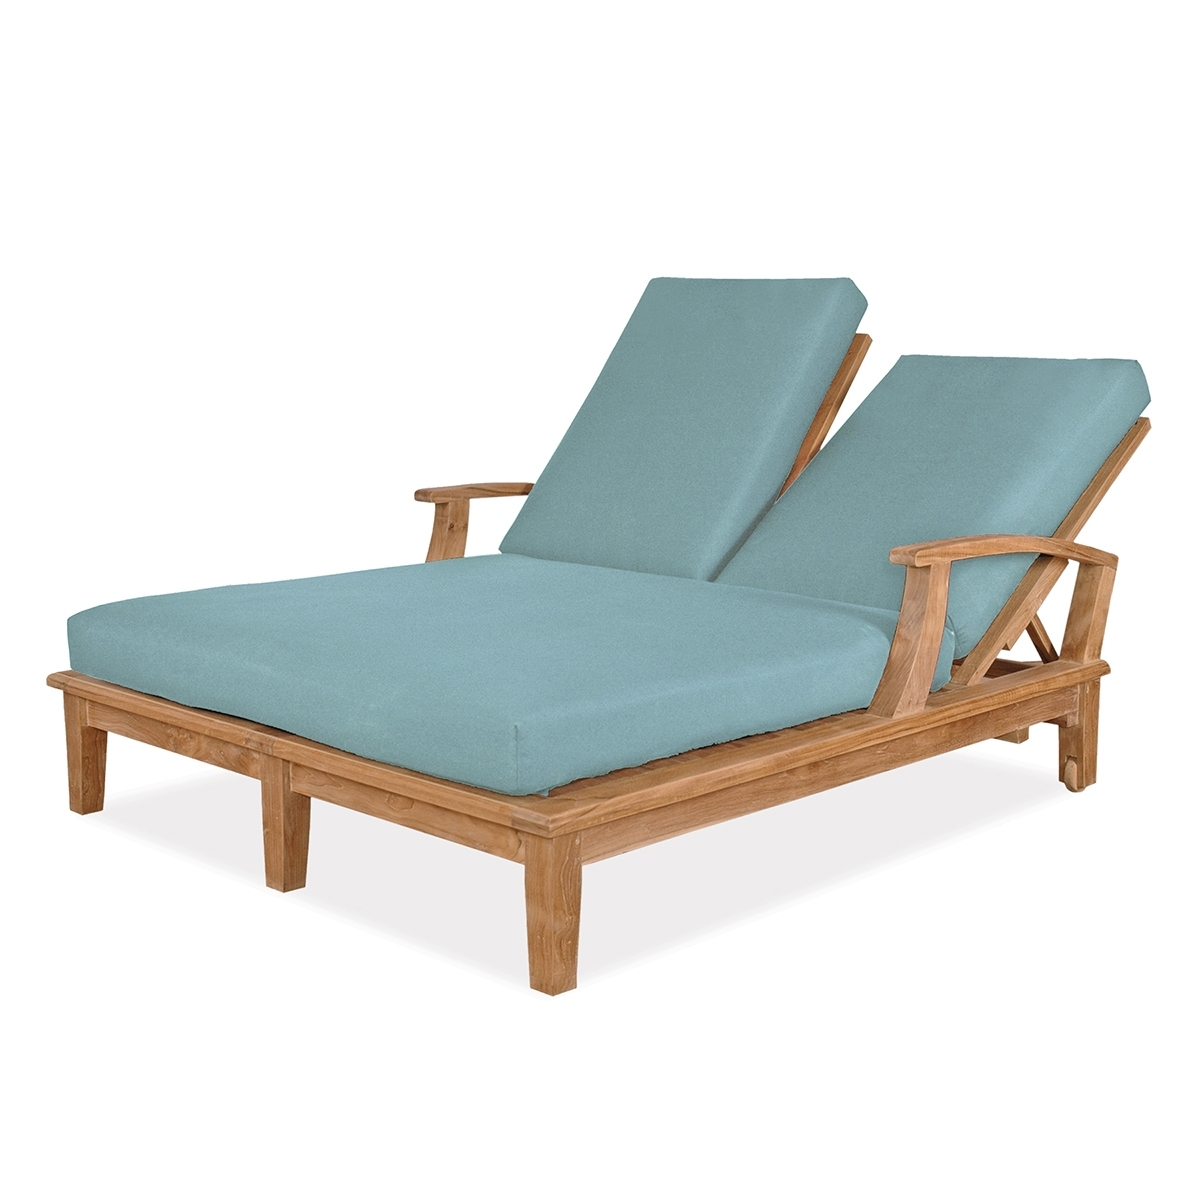 Veranda Collection In Fashionable Outdoor Double Chaise Lounges (Gallery 1 of 15)